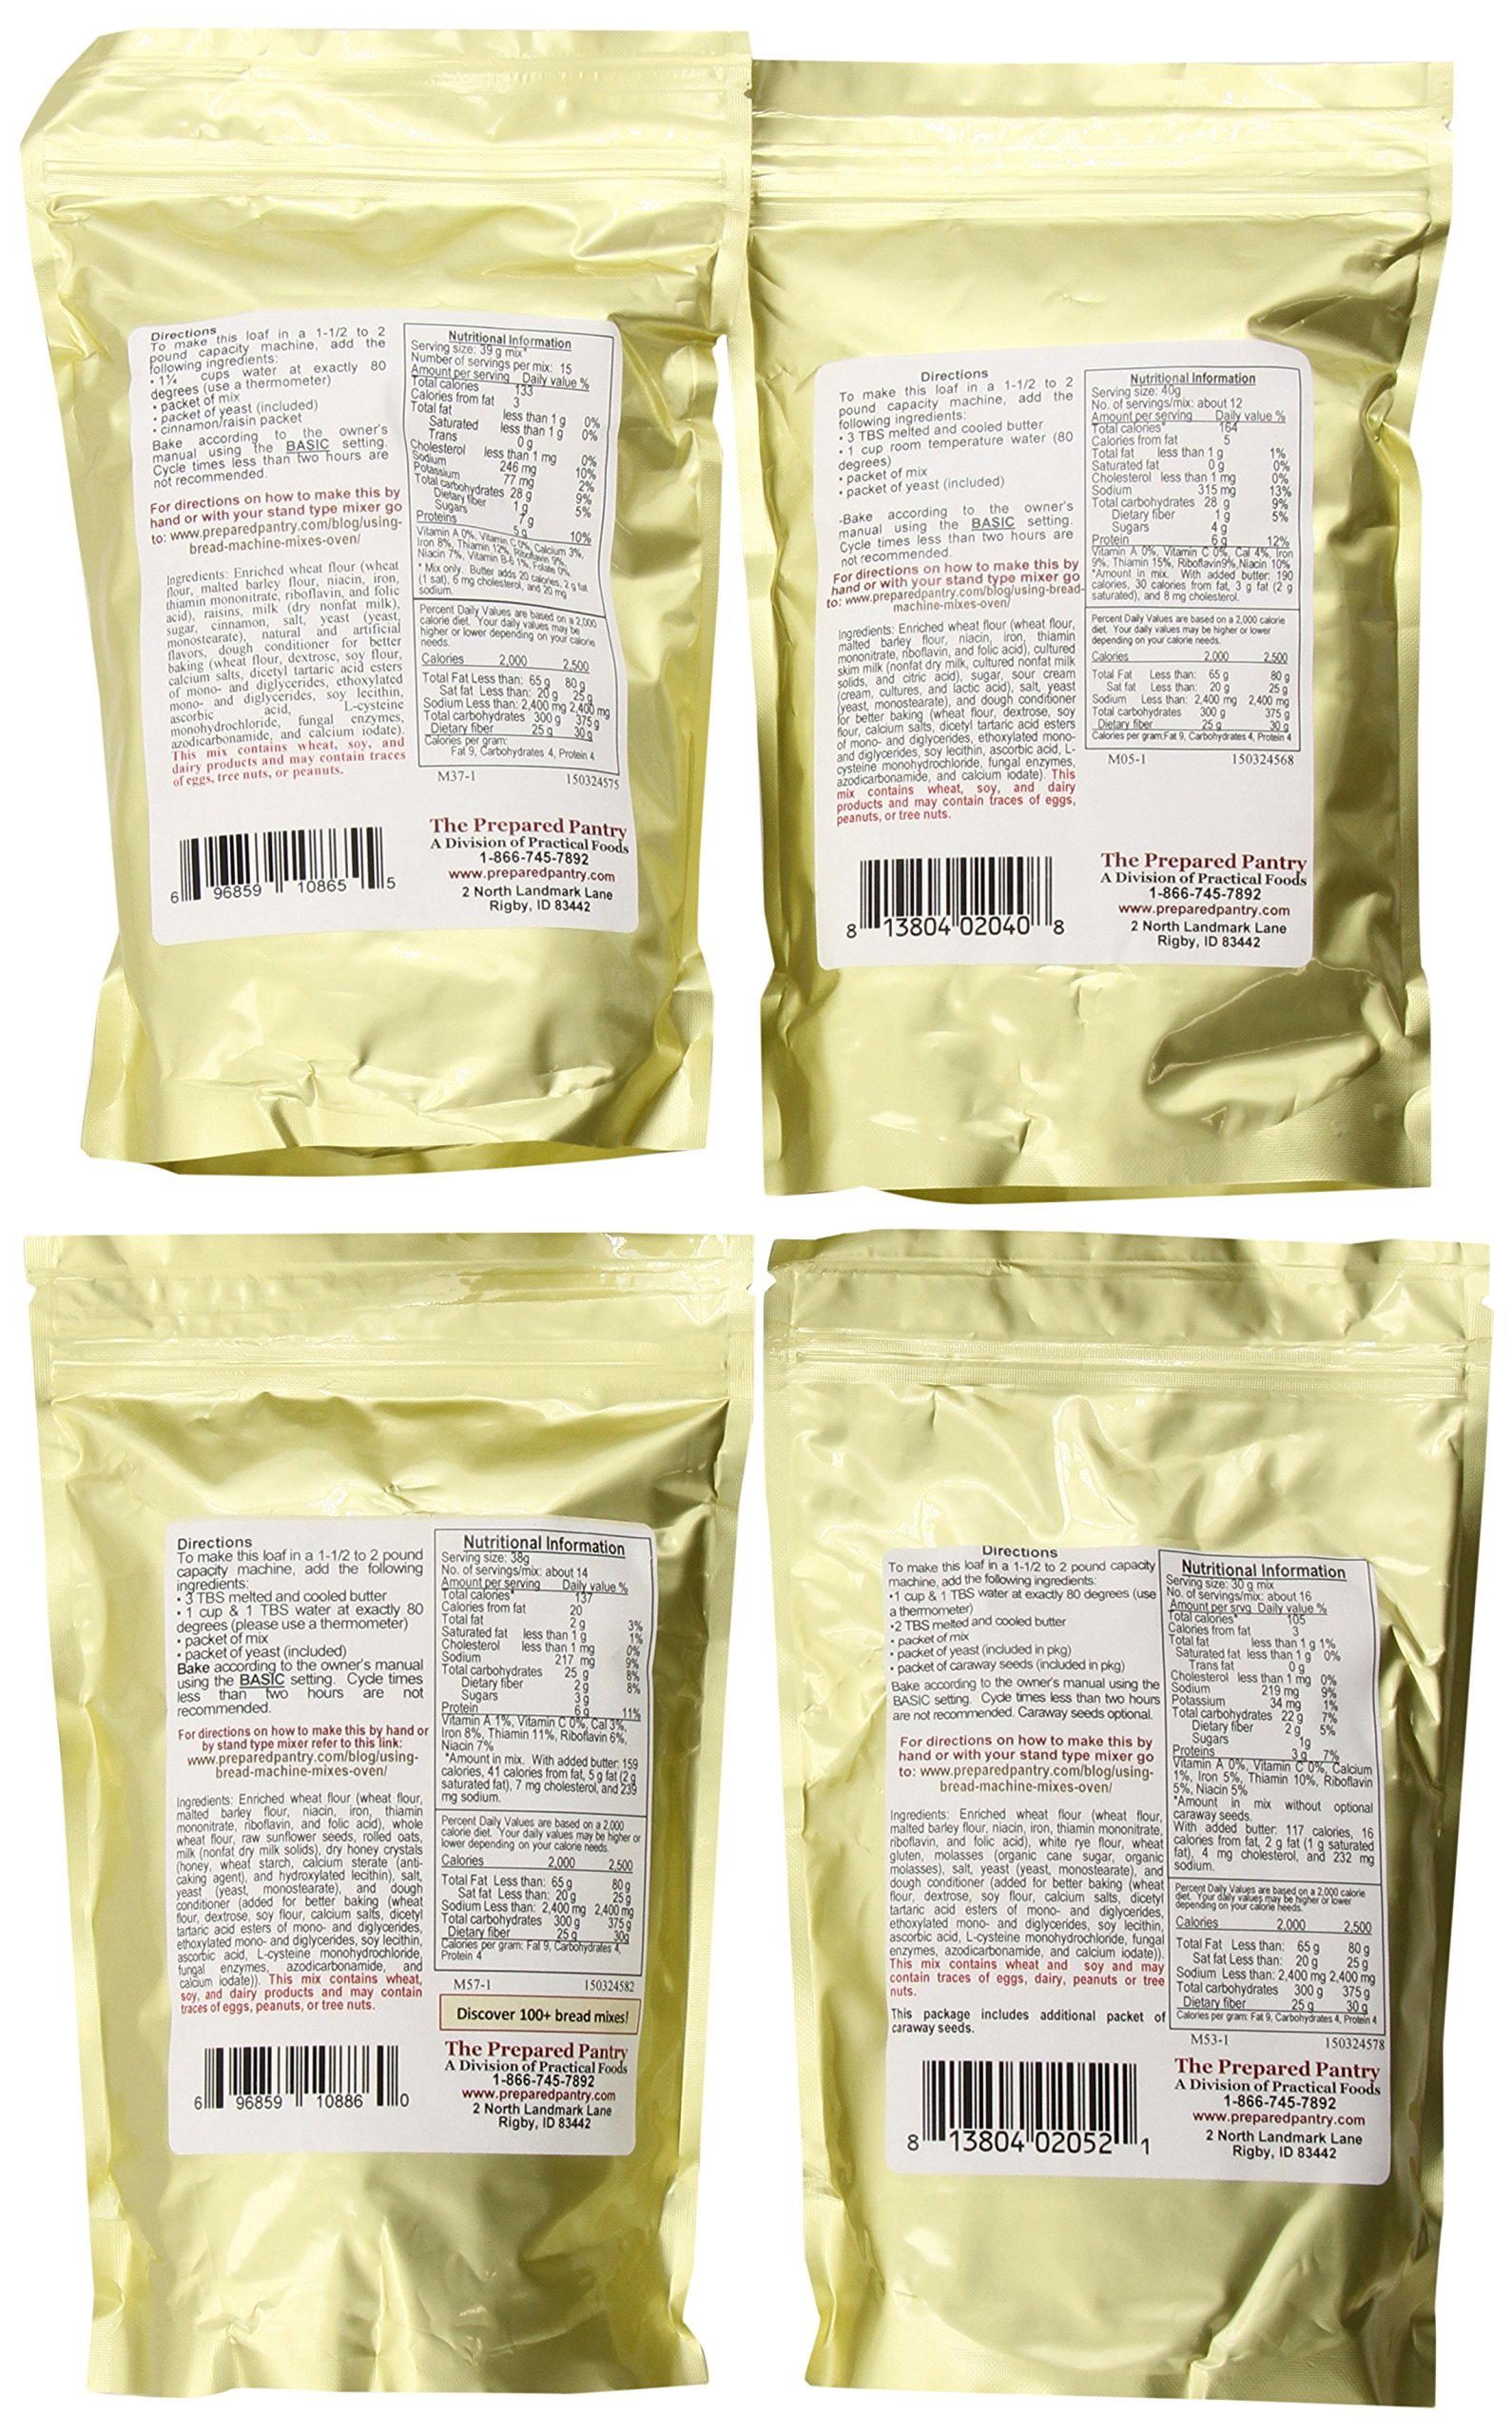 The Prepared Pantry Weekend Collection, 75.6 Ounce by The Prepared Pantry (Image #2)